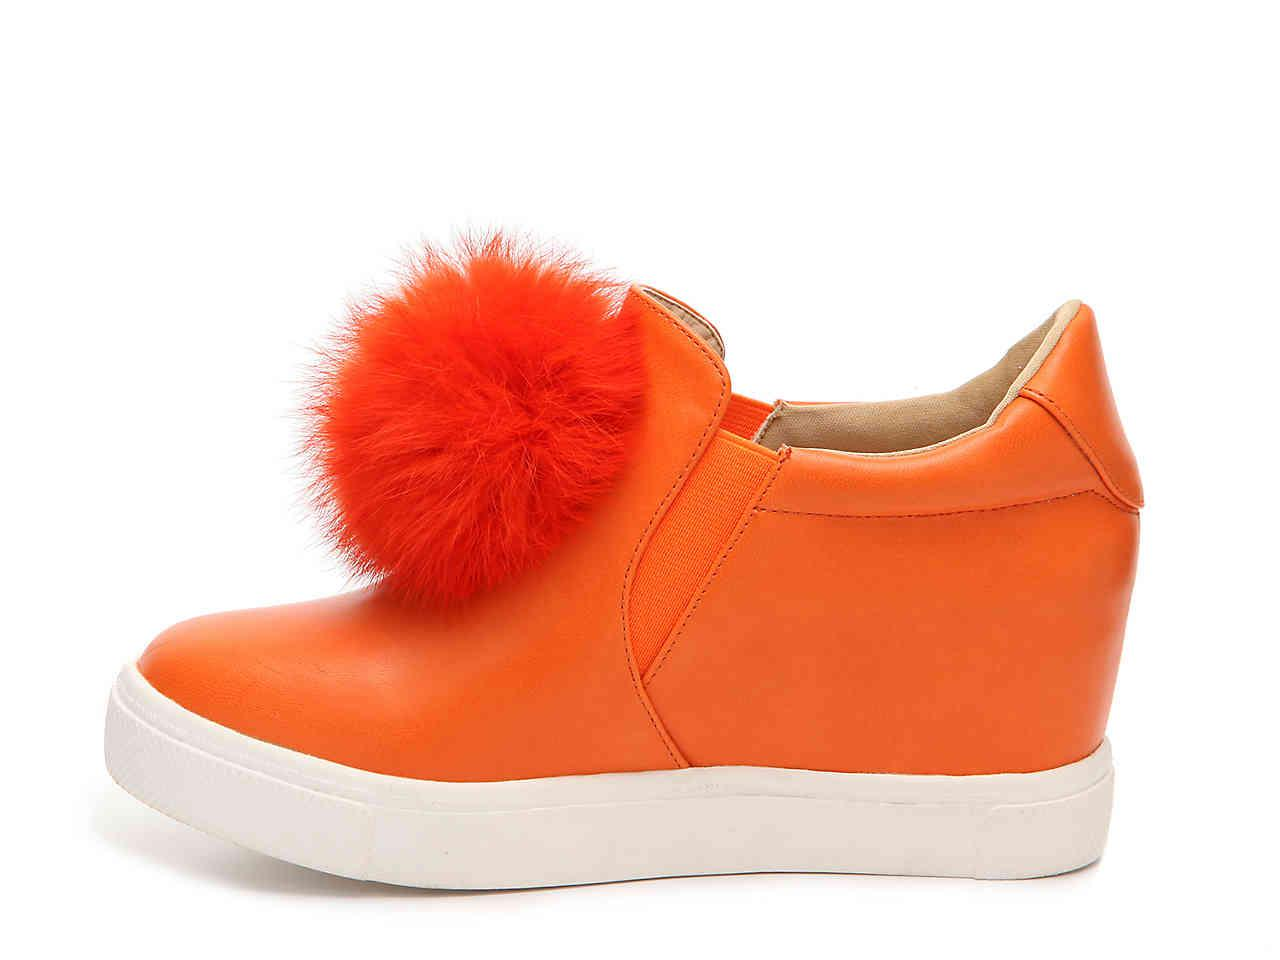 Penny Loves Kenny Kick Pom Pom Slip-On Wedge Sneaker(Women's) -Black Microsuede Cheap Price Outlet Sale Factory Outlet Particular Outlet For Nice lKLXSdA